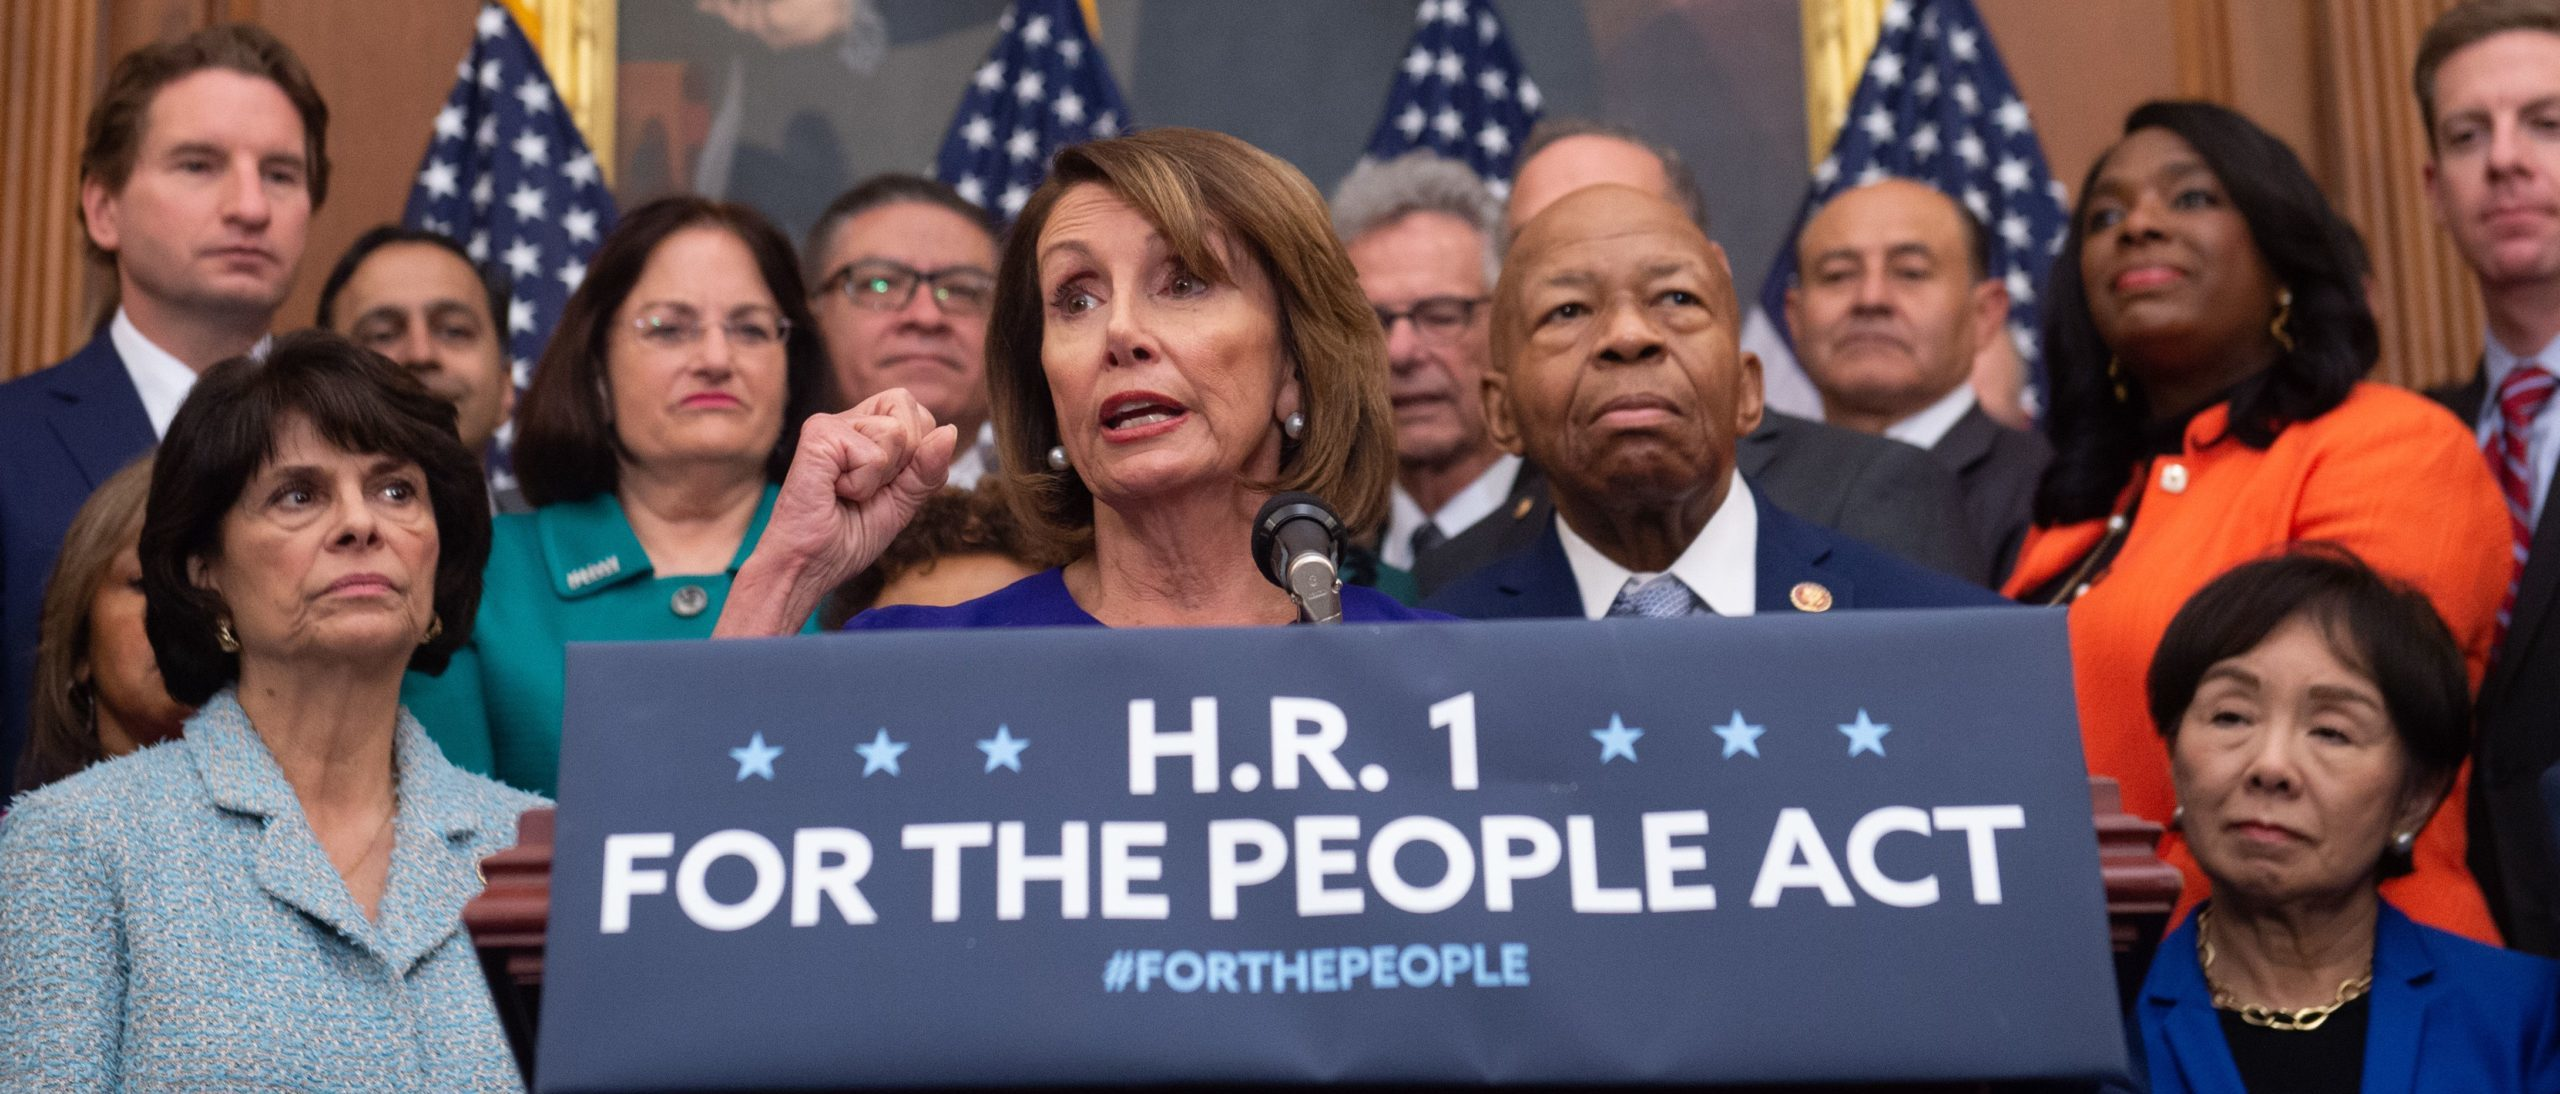 """US Speaker of the House Nancy Pelosi (C), Democrat of California, speaks alongside Democratic members of the House about H.R.1, the """"For the People Act,"""" at the US Capitol in Washington, DC, January 4, 2019. - Democrats announced their first piece of legislation to reform voting rights provisions, ethics reforms and a requirement that presidential candidates release 10 years of tax returns. (Photo by SAUL LOEB / AFP) (Photo credit should read SAUL LOEB/AFP via Getty Images)"""